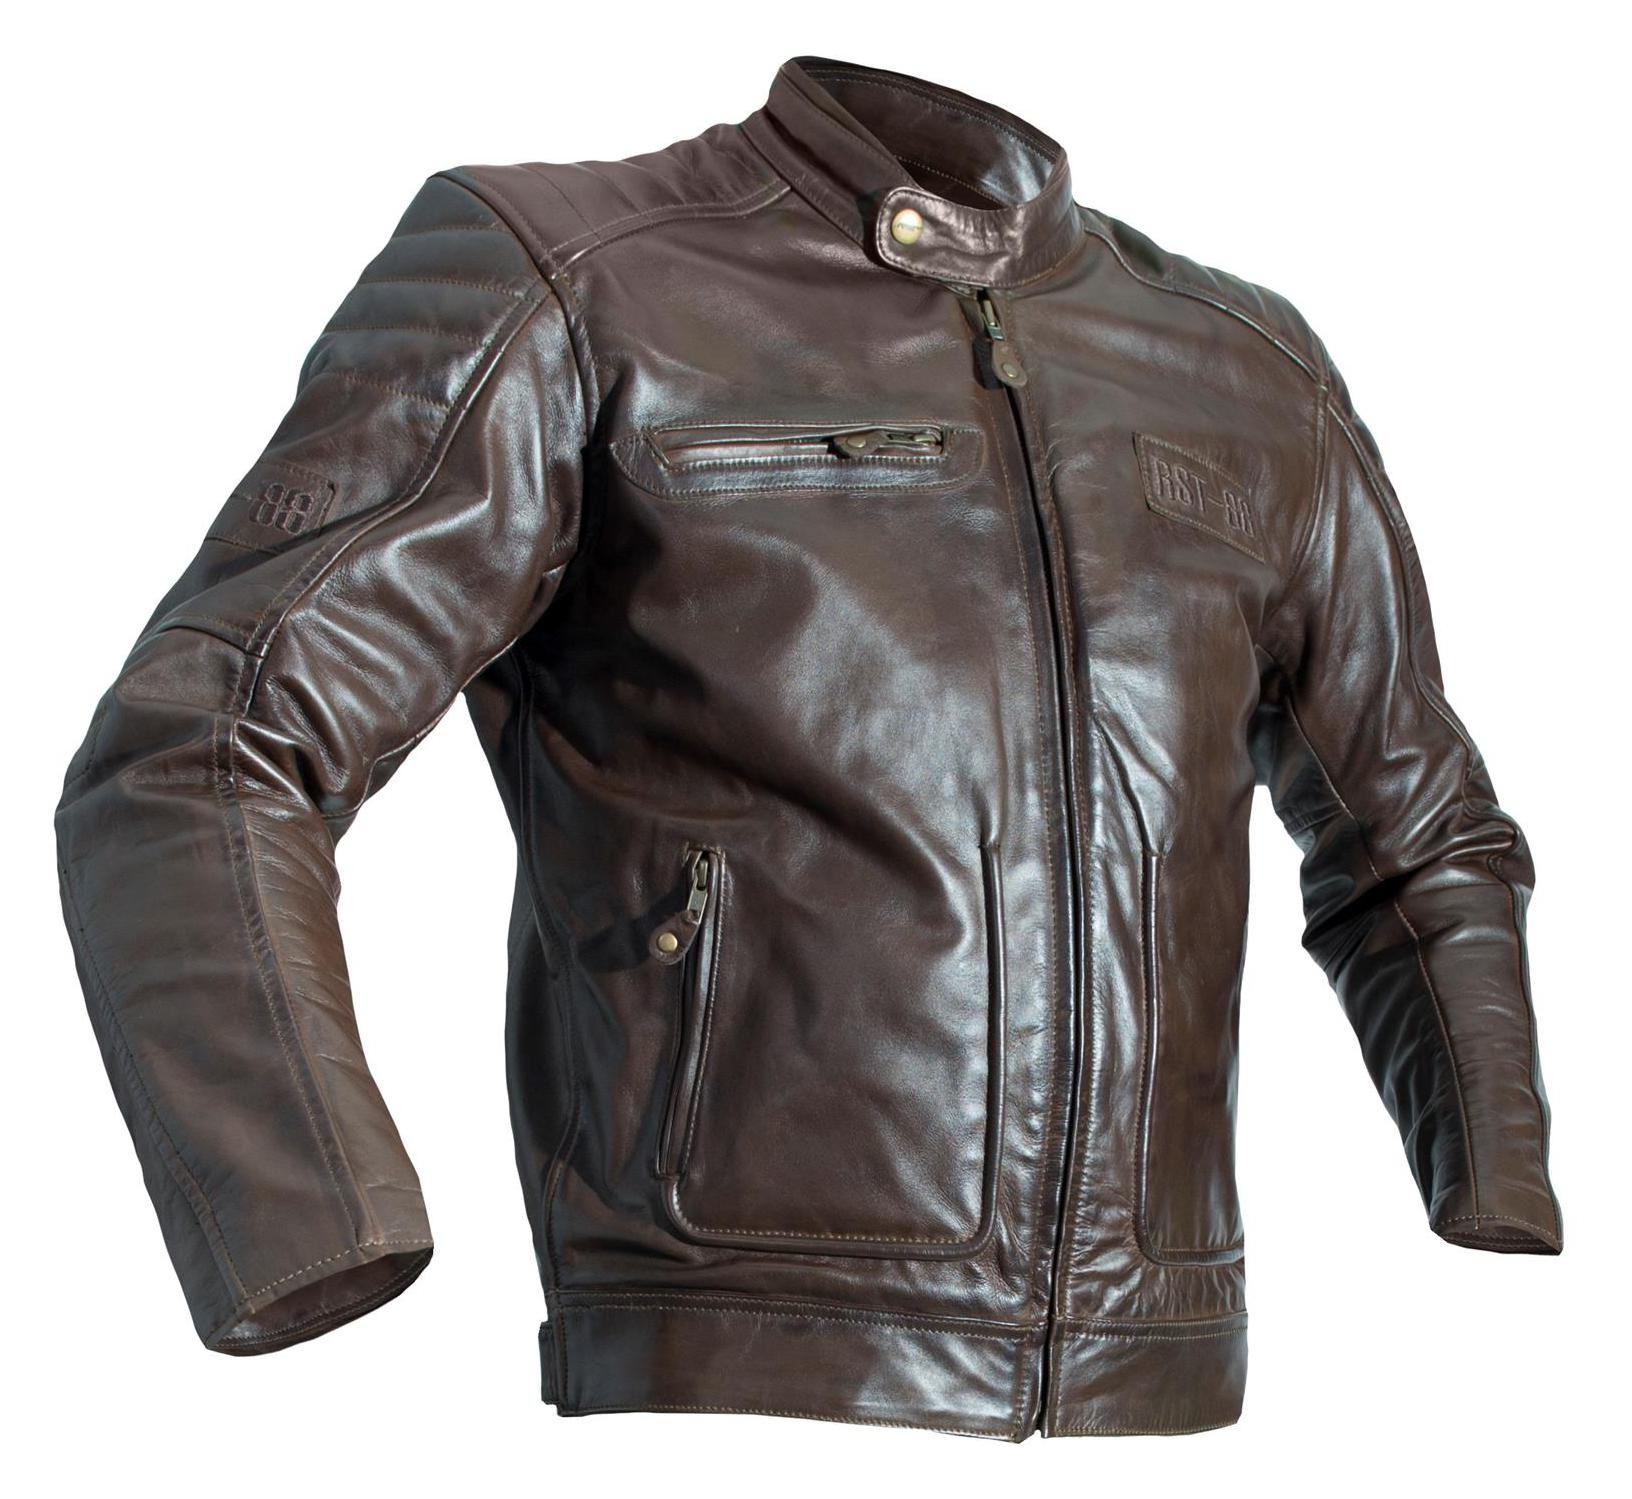 Leather Classic Rst Jacket Motorcycle Ii Roadster qwvErCxwH